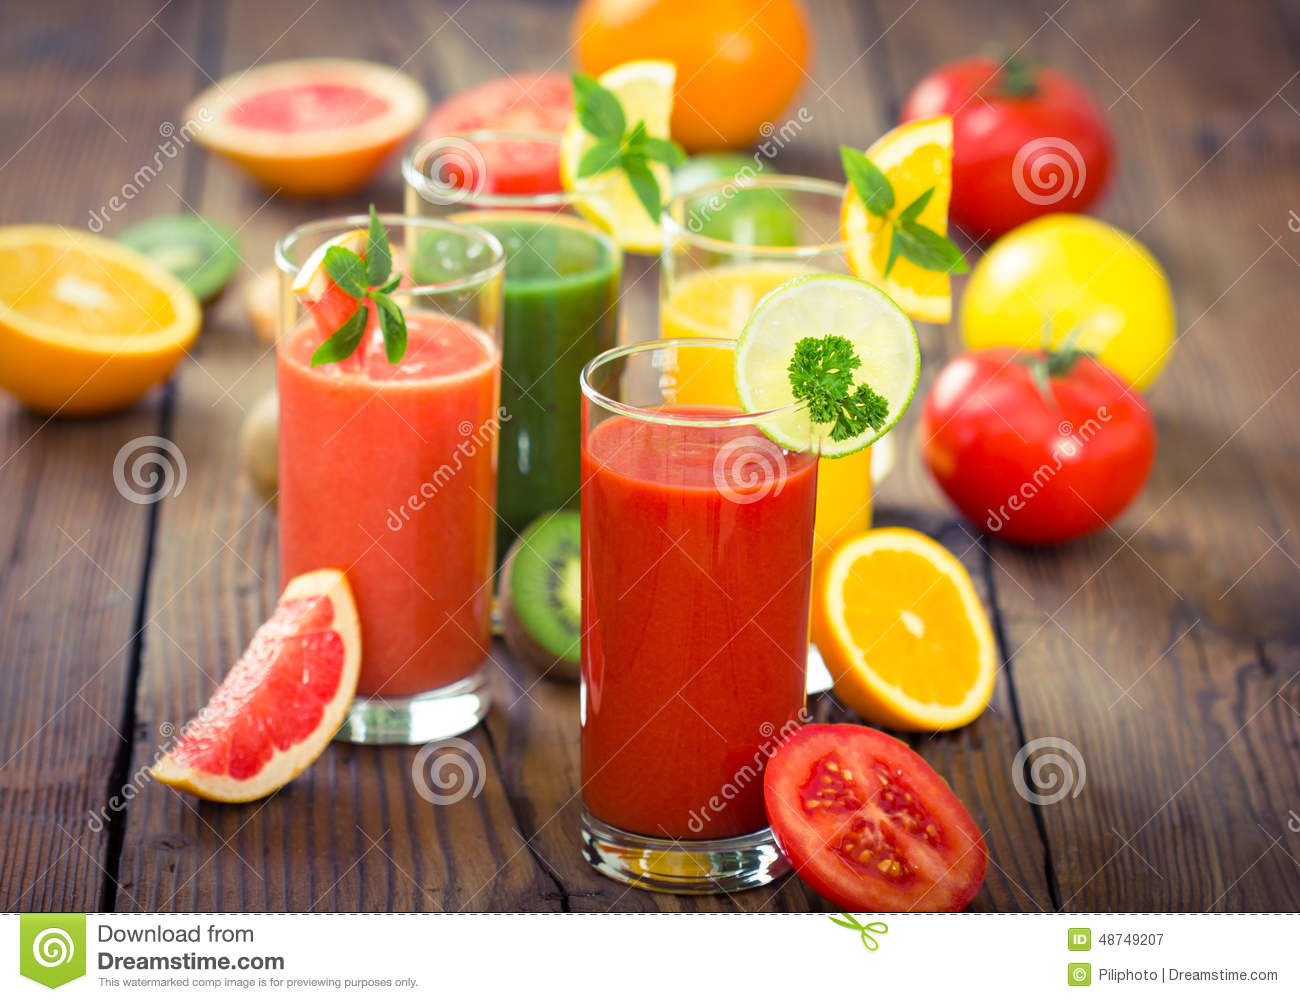 Vegetables And Fruit Smoothies  Healthy Fruits And Ve ables Smoothies Stock Image